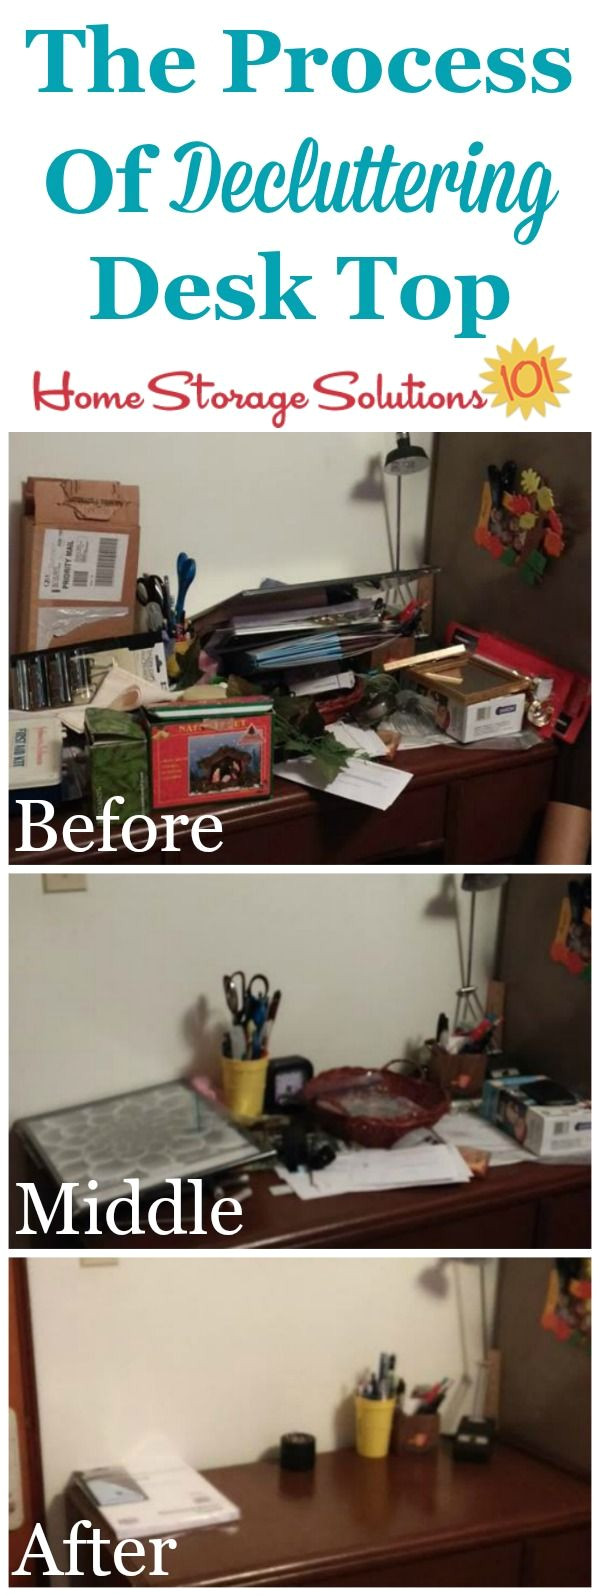 progression from beginning to the end of the decluttering process when clearing of desk top